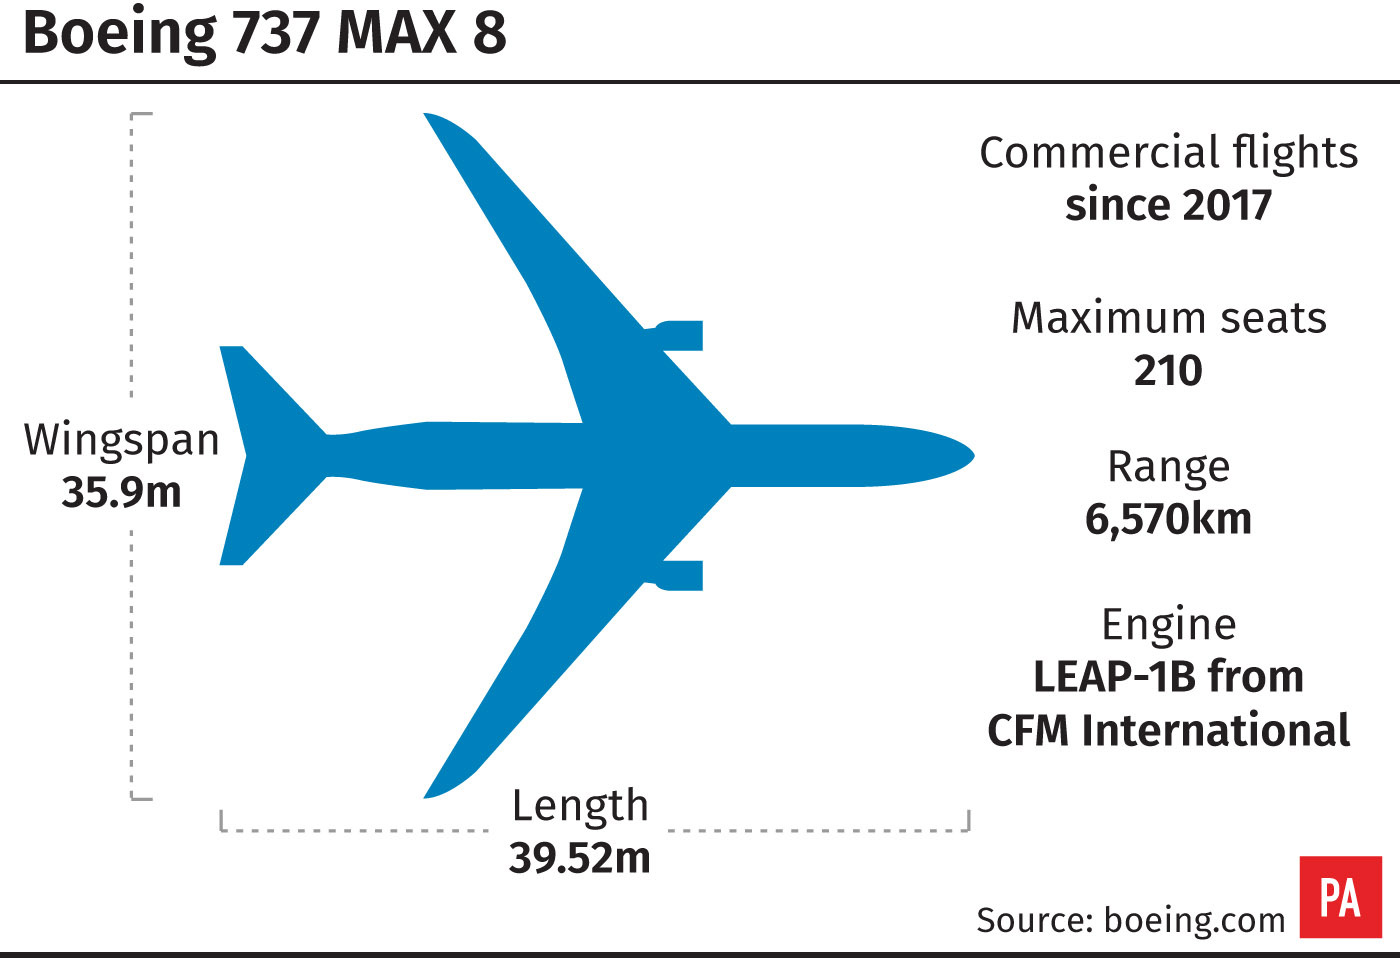 Boeing 737 MAX 8 graphic